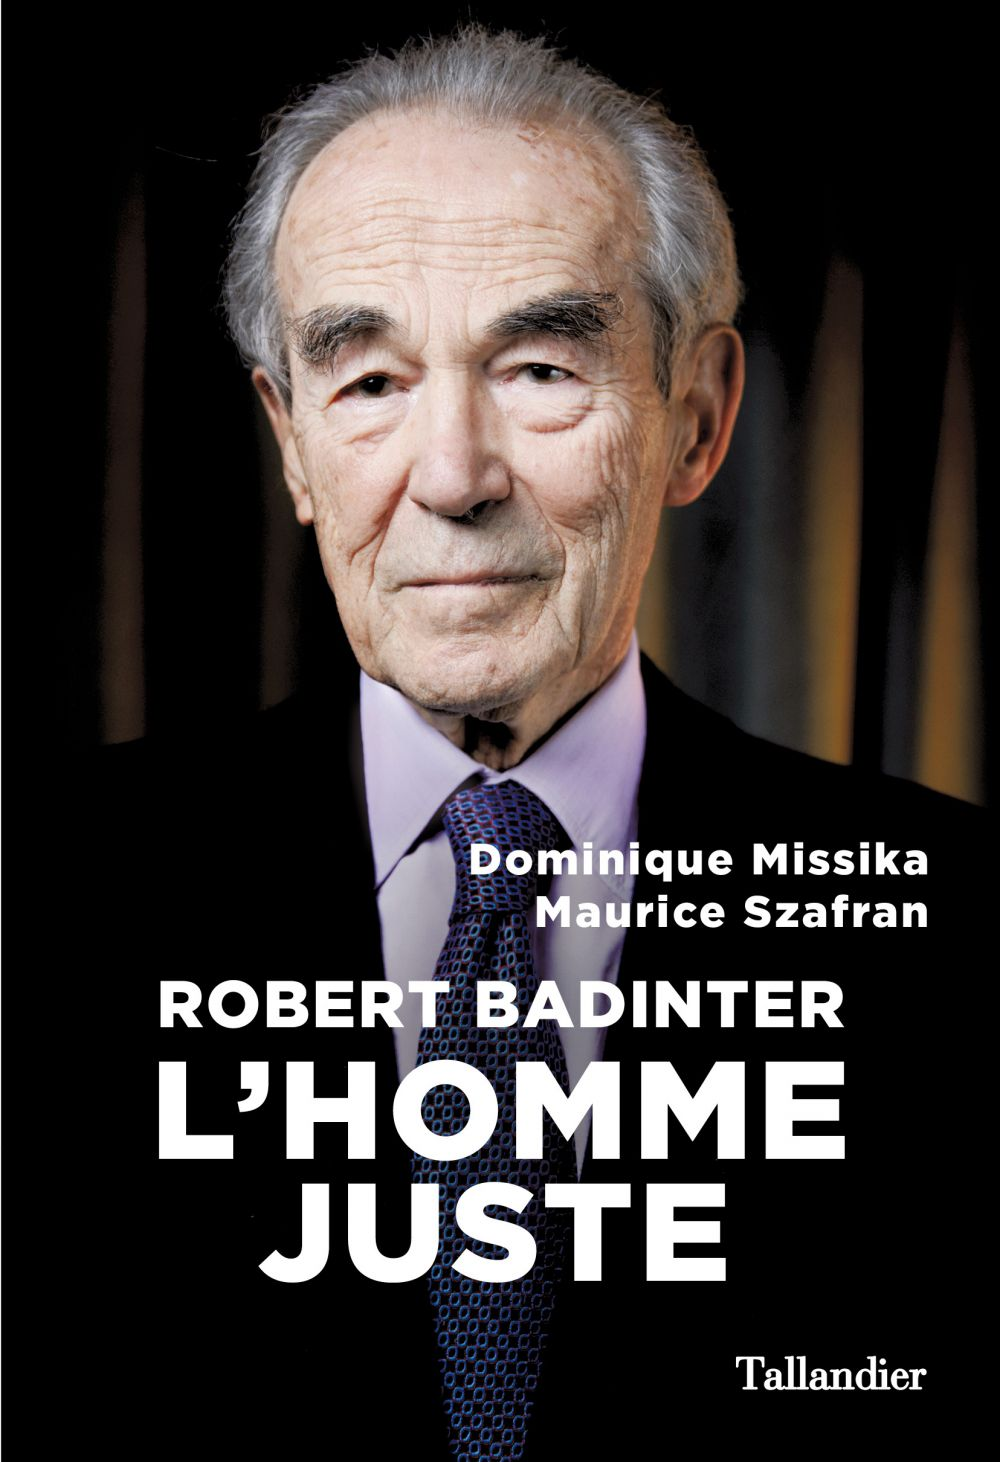 Robert Badinter | Missika, Dominique. Auteur